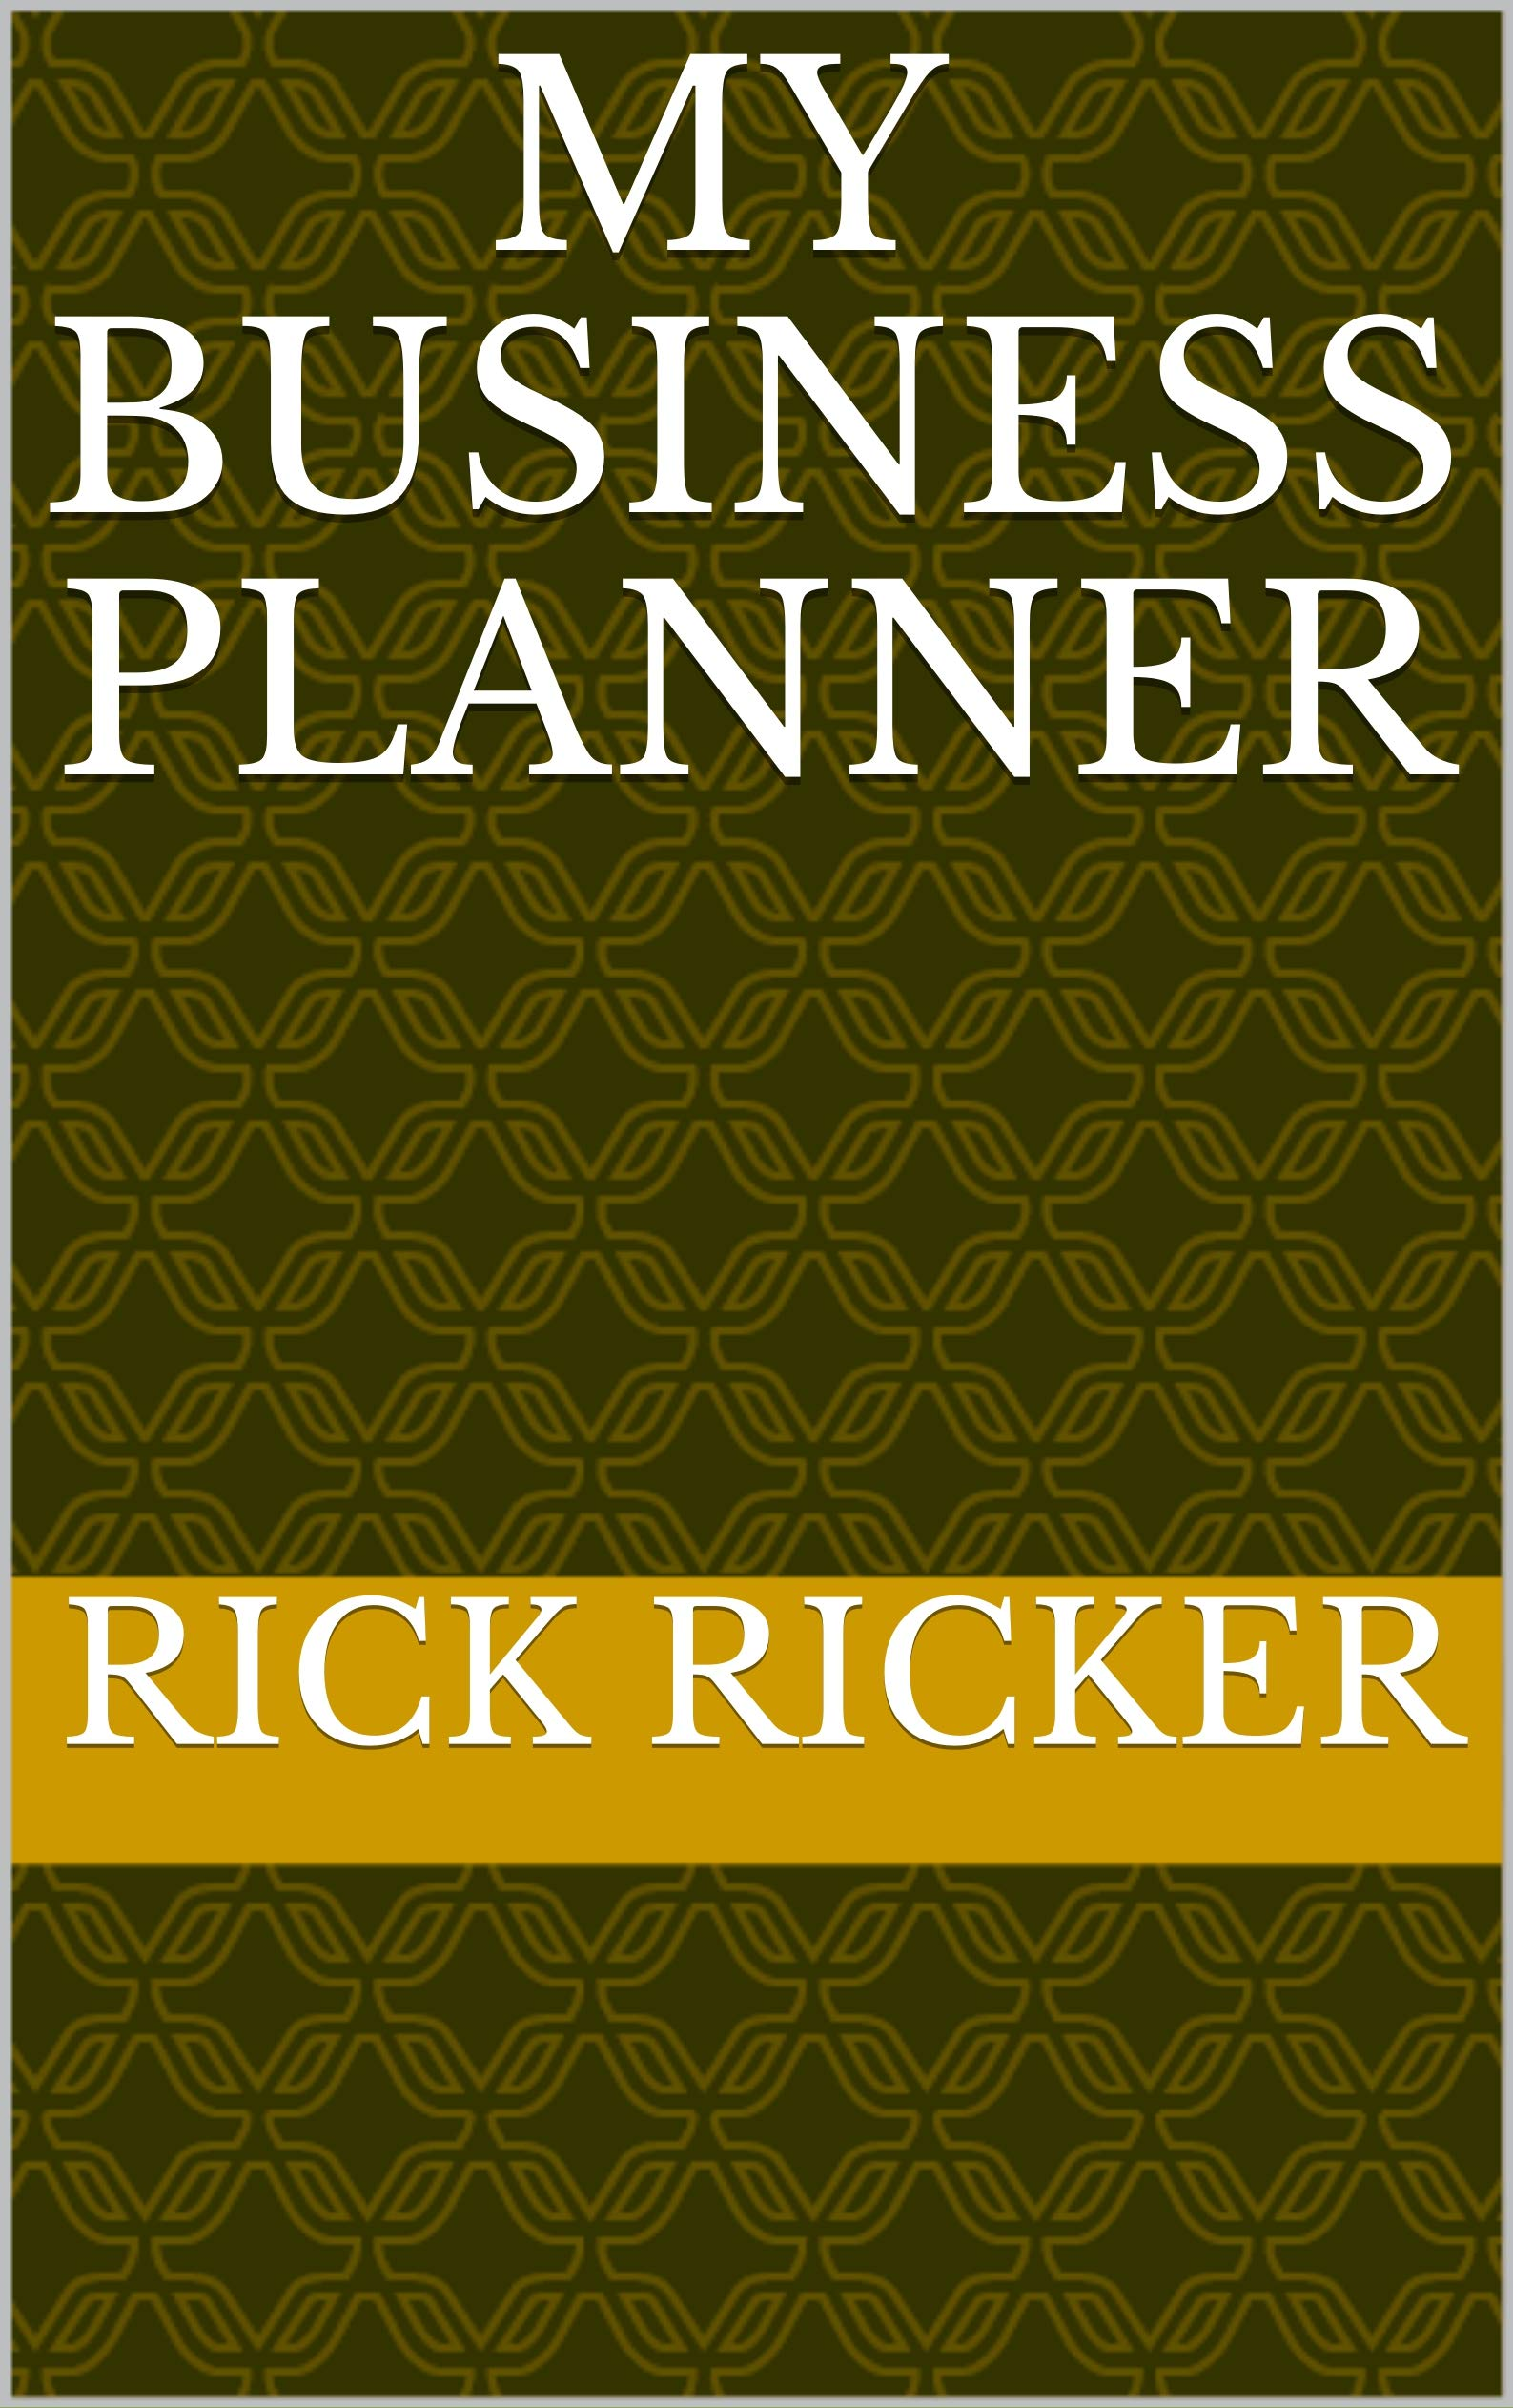 My Business Planner